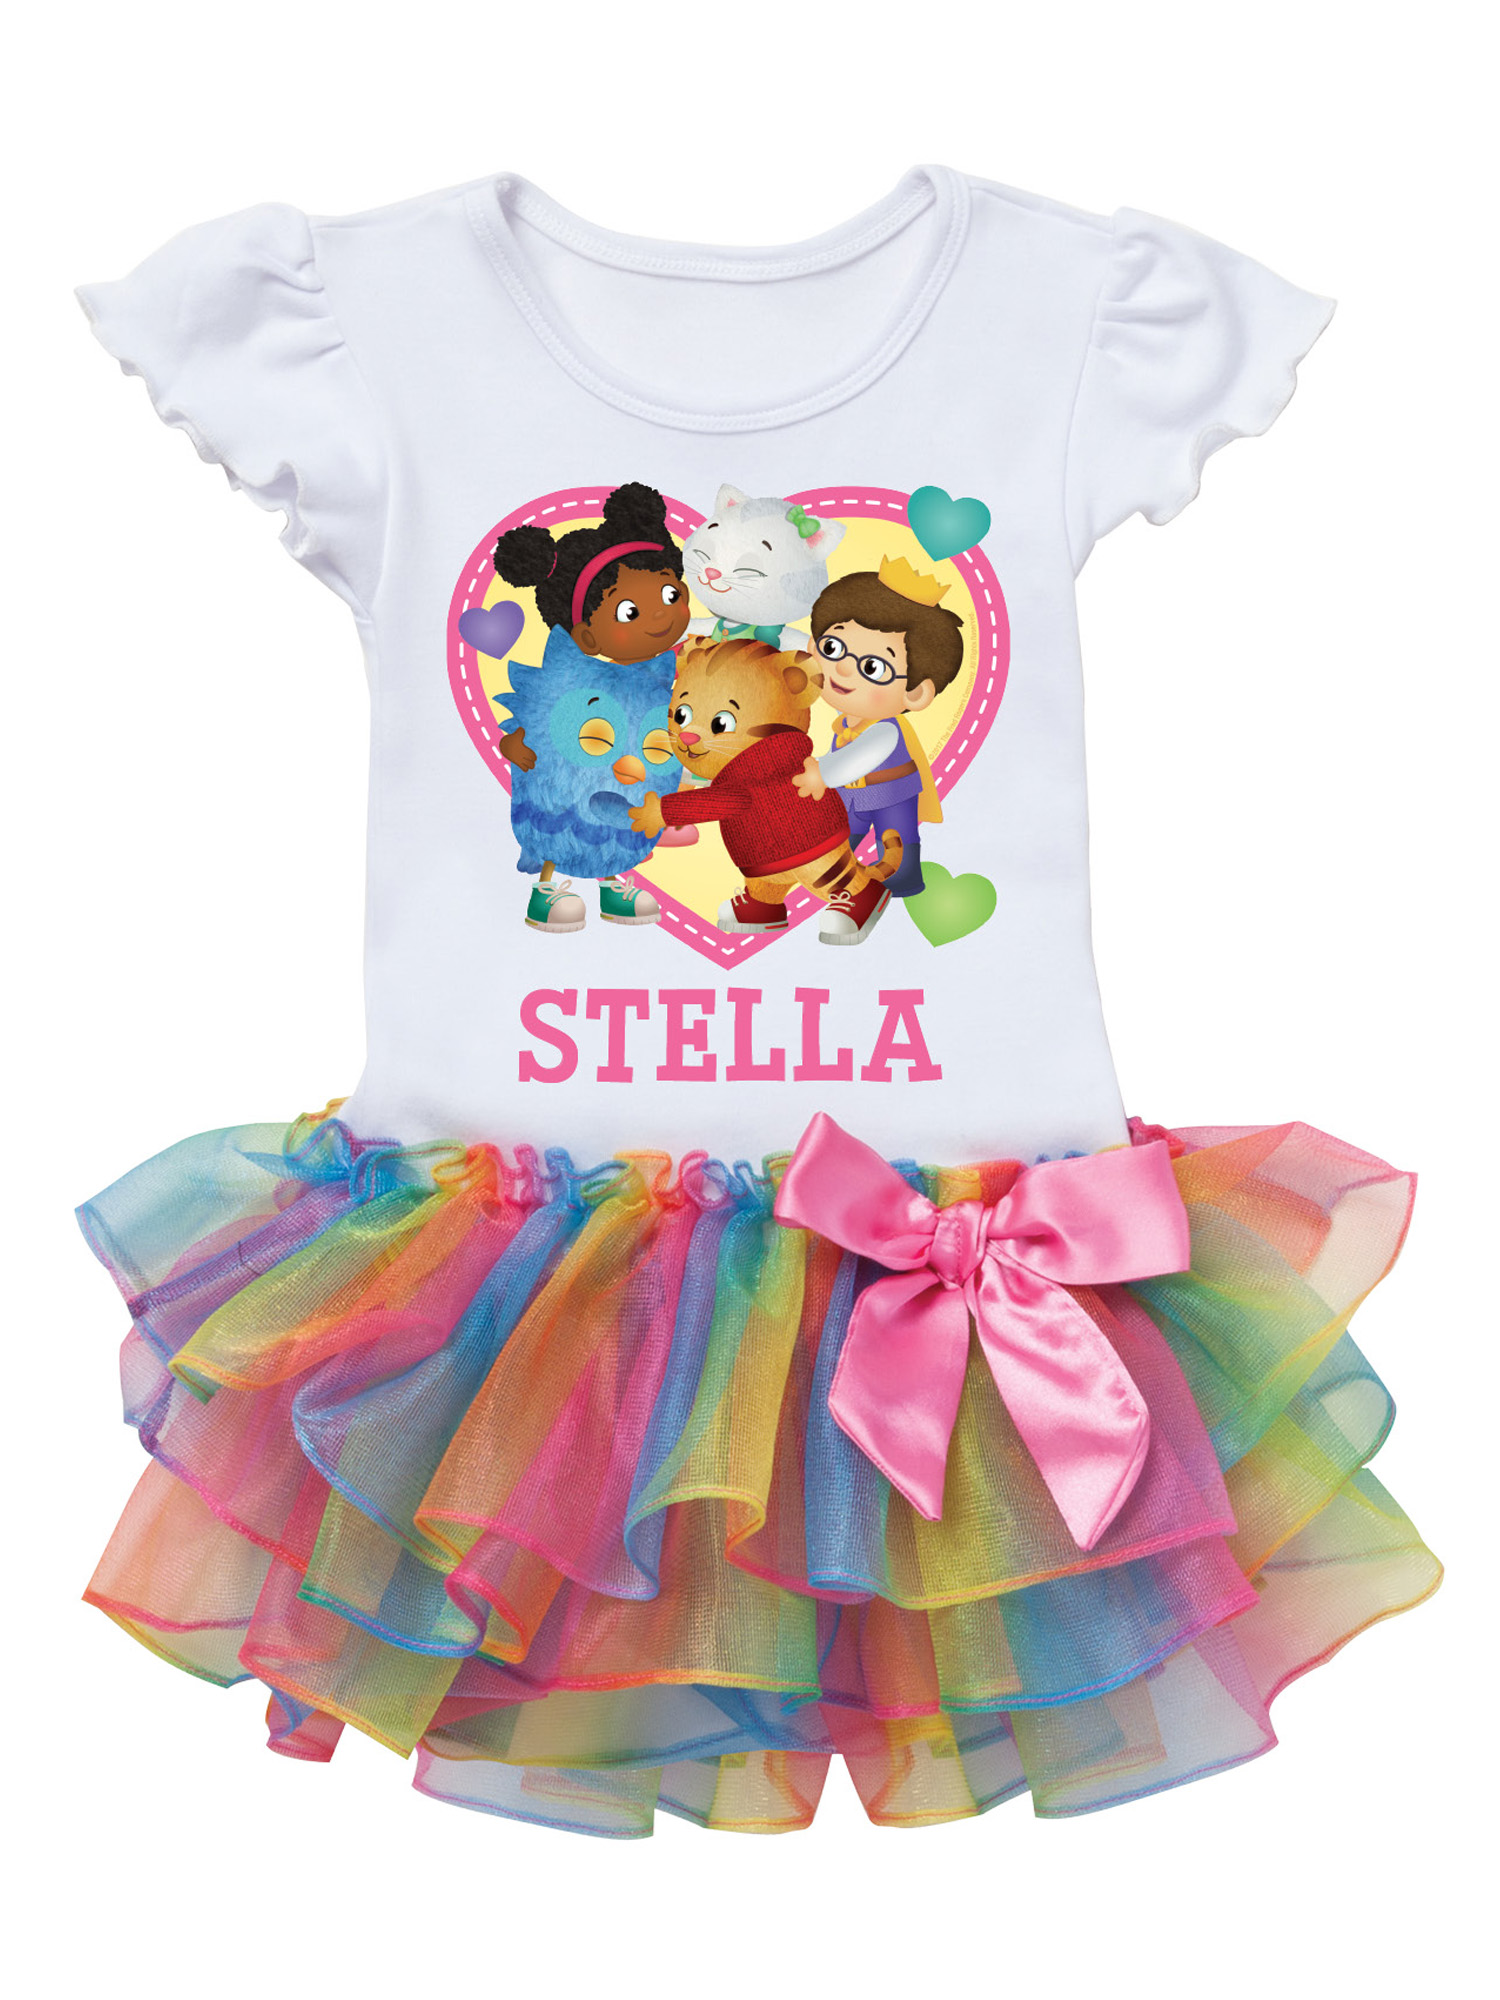 Daniel Tiger and Friends Toddler Heart Personalized Rainbow Tutu Tee - 2T, 3T, 4T, 5/6T